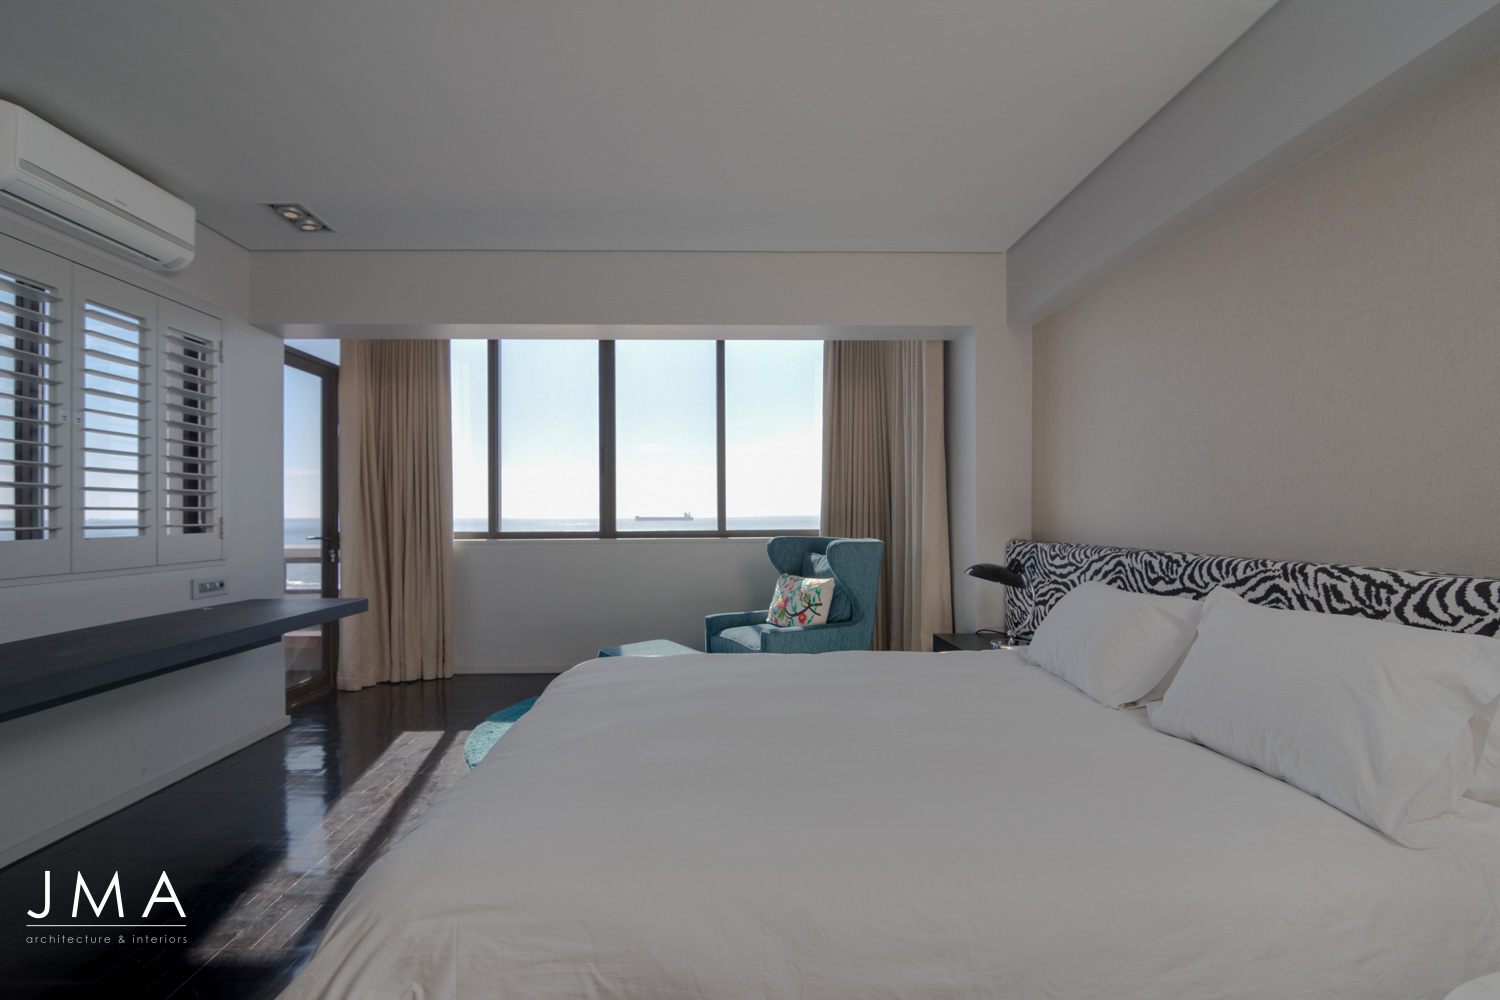 Sea Point Apartment Architecture & Interior Design by Jenny Mills Architects - Master Bedroom View 1